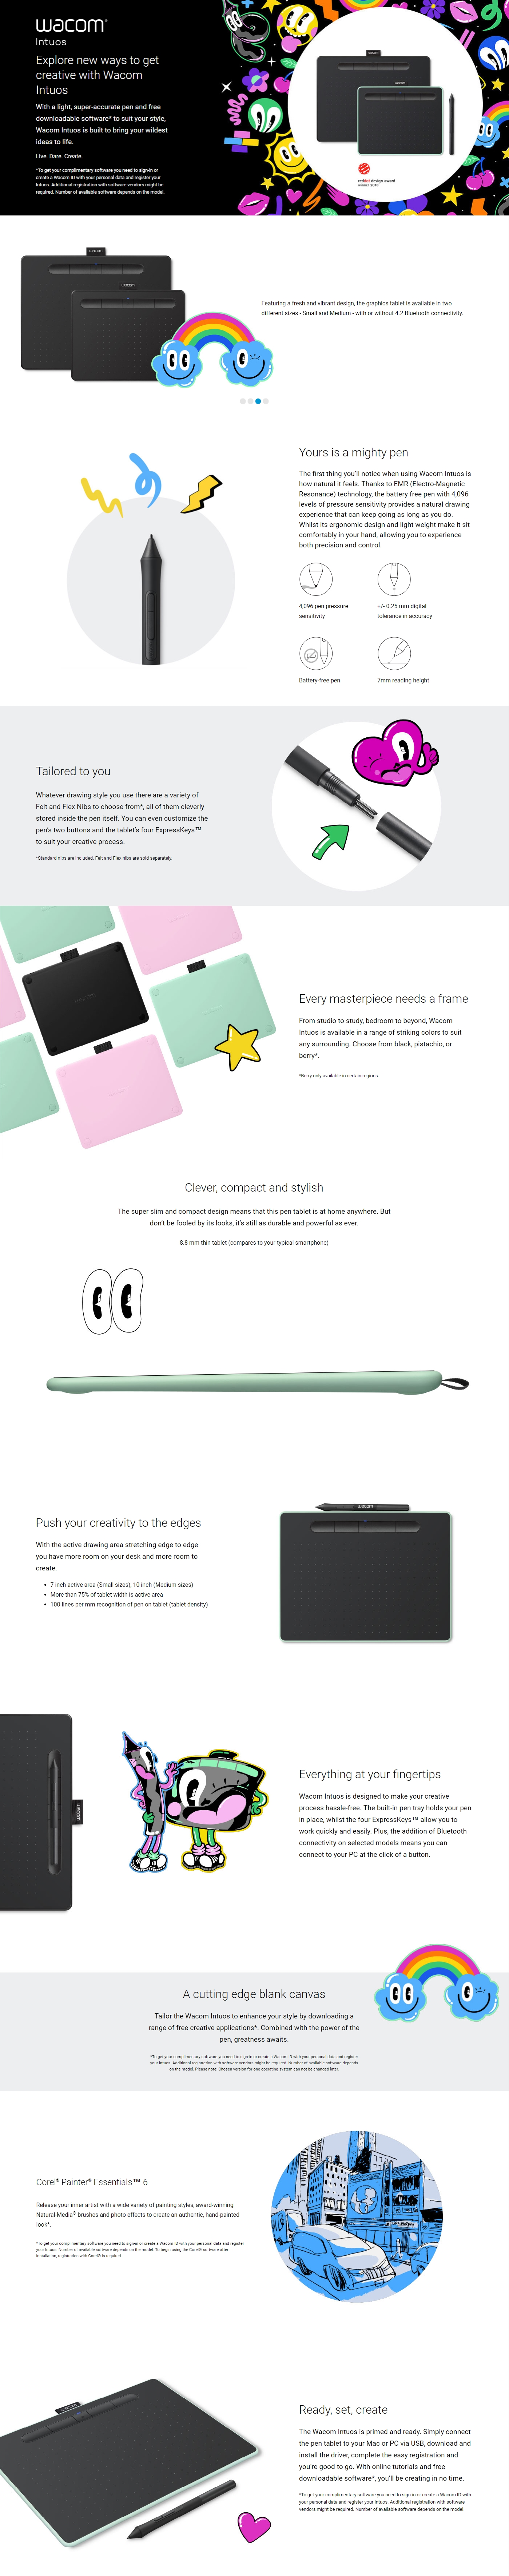 A large marketing image providing additional information about the product Wacom Intuos Medium Bluetooth Drawing Pad - Berry - Additional alt info not provided